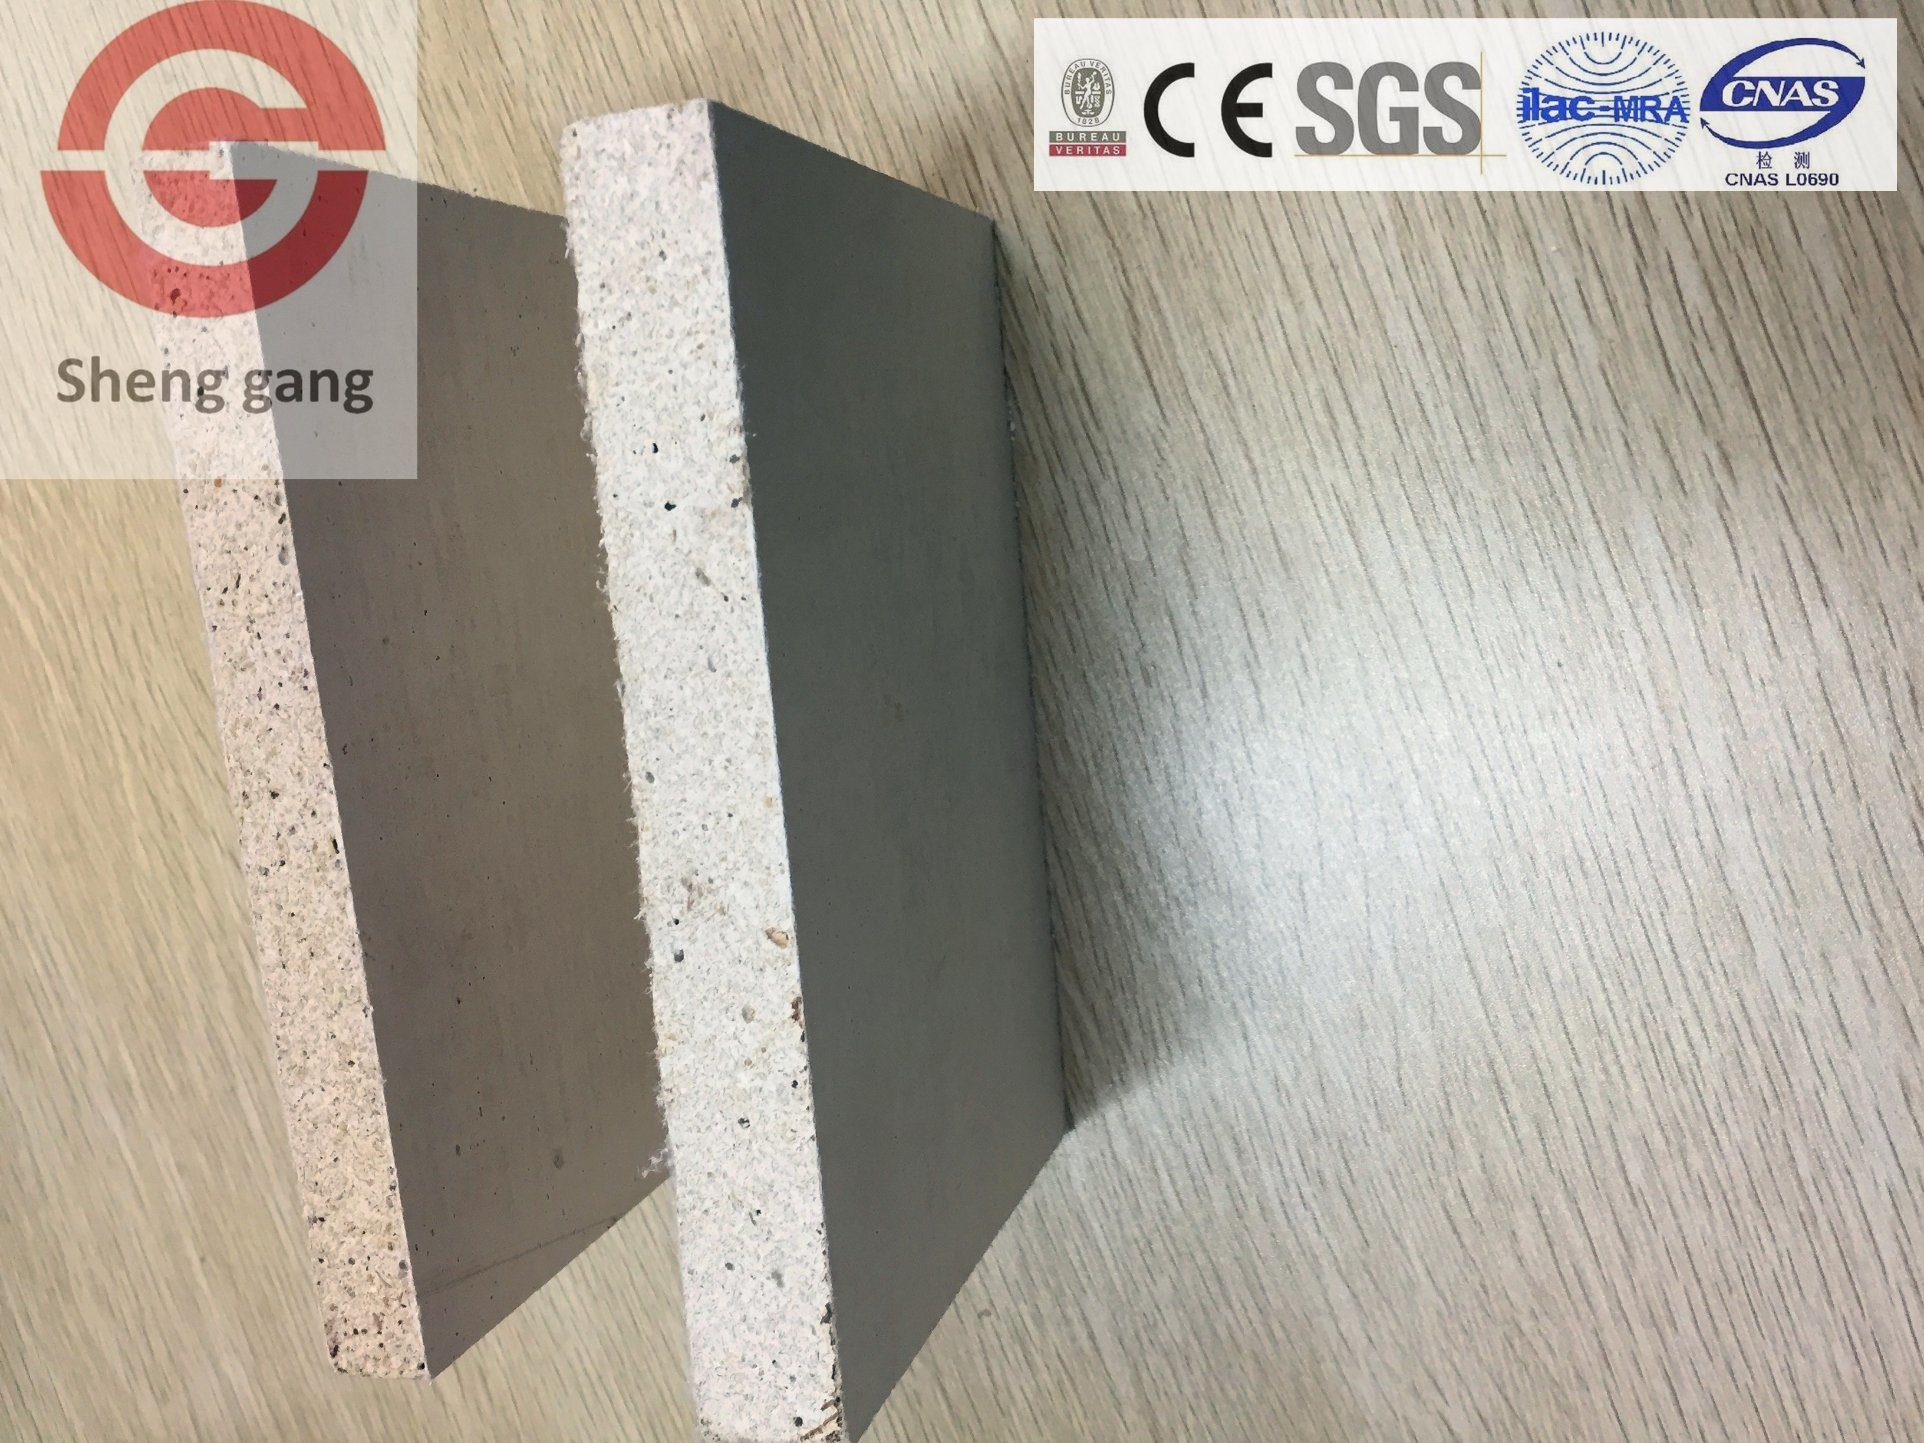 Light Weight Heat Resistant Fireproof Material Mgo Board For Fireplace